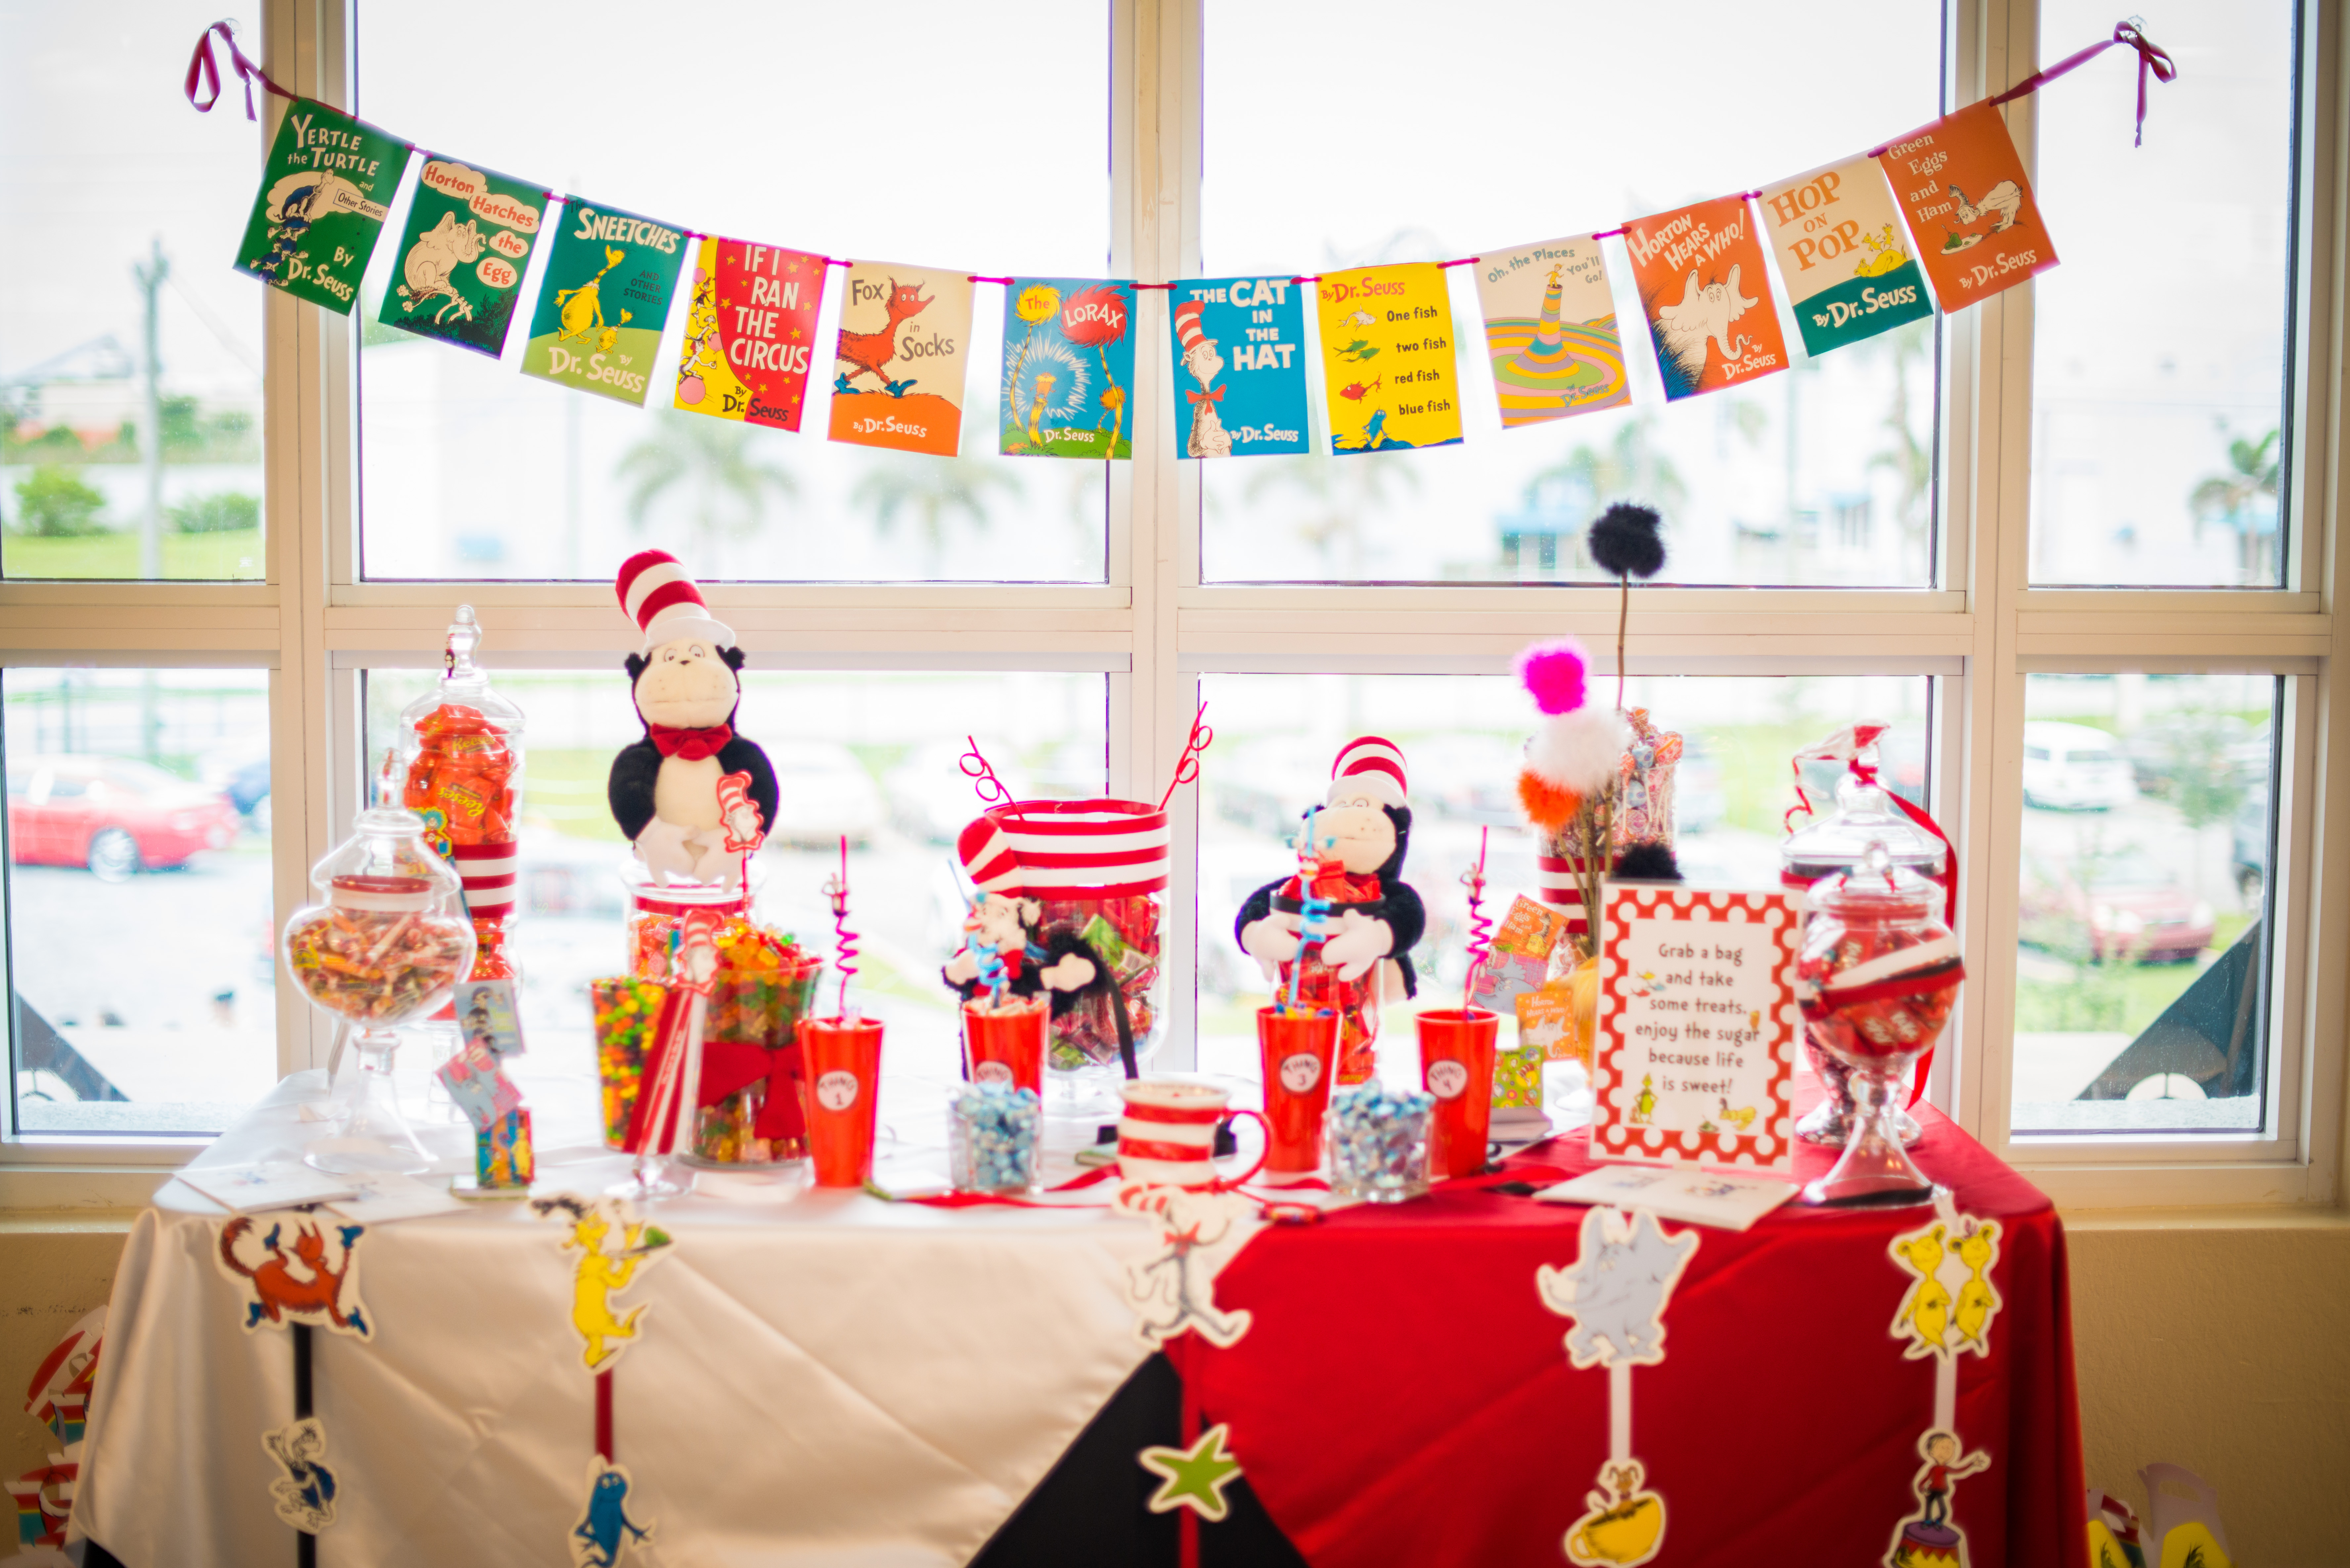 Best ideas about Dr.seuss Birthday Decorations . Save or Pin Dr Seuss Themed Birthday Party by Cary Diaz graphy Now.